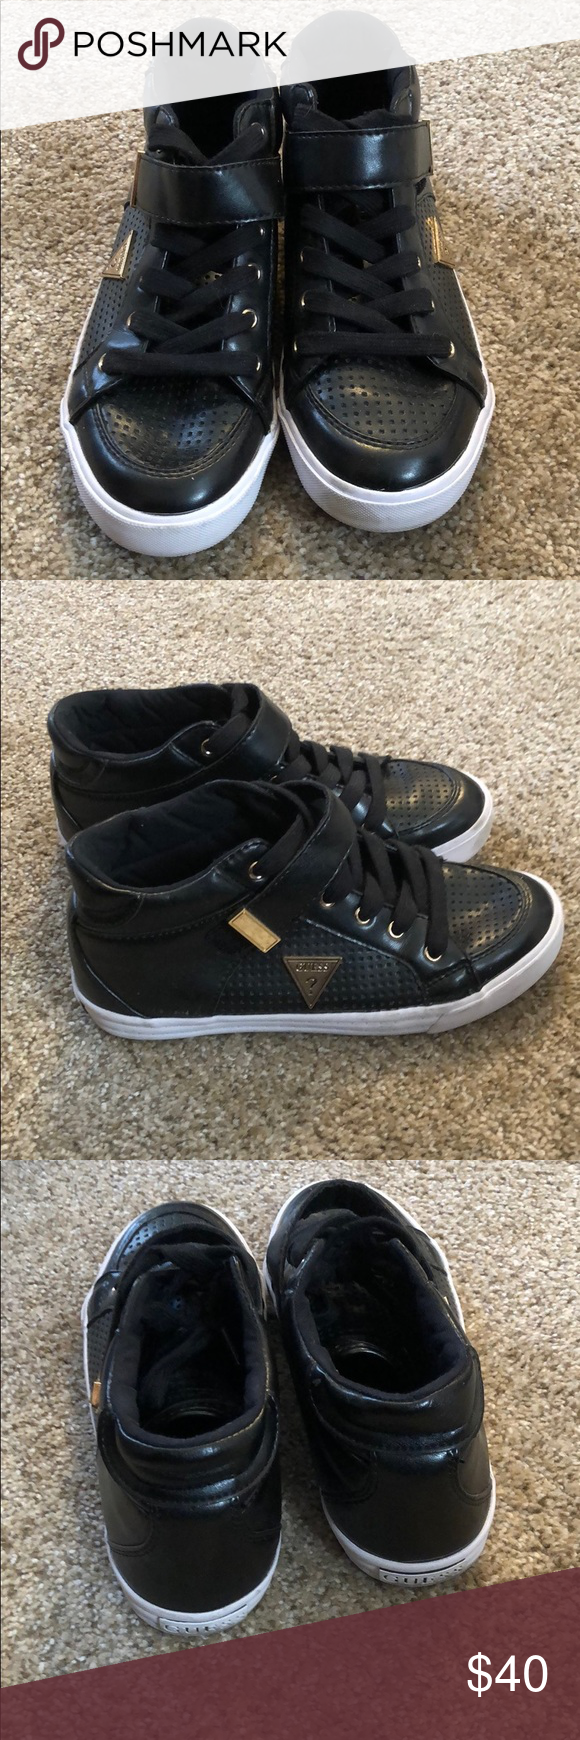 Guess sneakers These guess tennis shoes are the best way to bring some sporty ch  Guess sneakers These guess tennis shoes are the best way to bring some sporty ch